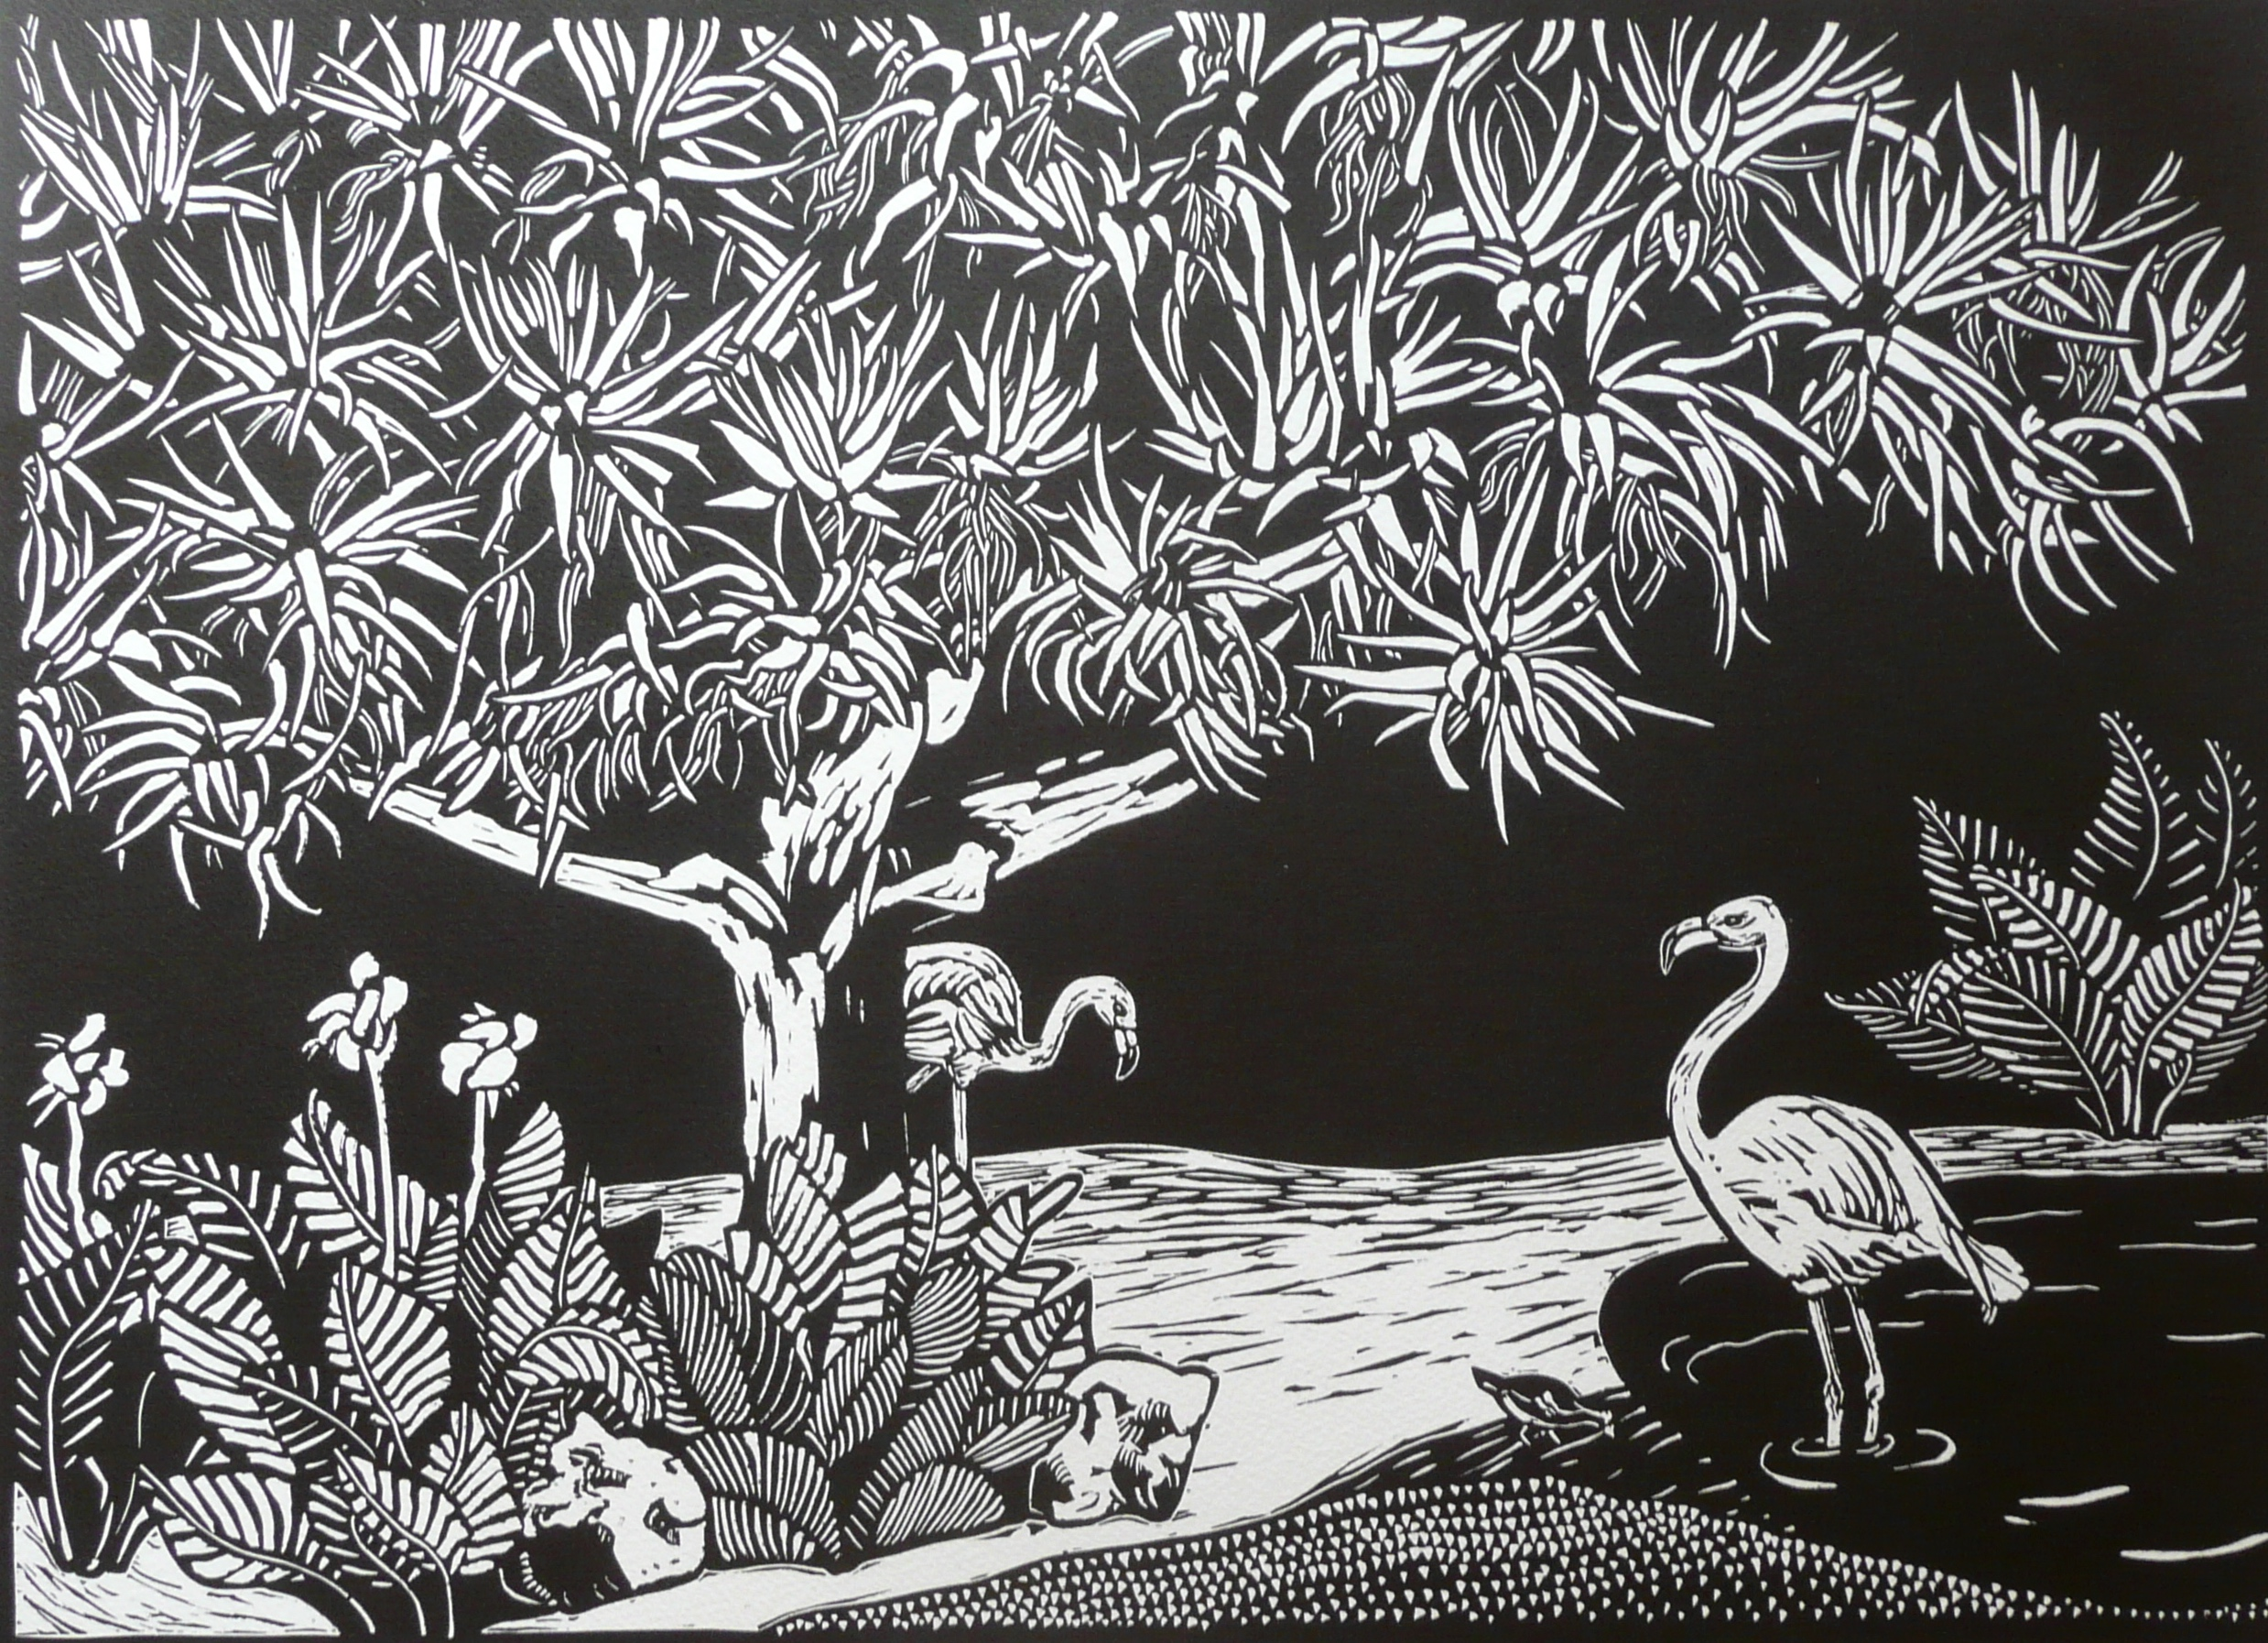 """Flamingos at Adelaide Zoo   Linocut, 2012  Edition of 10  Image size: 38cm x 52.5 cm  Paper size:56 cm x 66.5 cm  $260                      Normal   0           false   false   false     EN-AU   JA   X-NONE                                                                                                                                                                                                                                                                                                                                                                           /* Style Definitions */ table.MsoNormalTable {mso-style-name:""""Table Normal""""; mso-tstyle-rowband-size:0; mso-tstyle-colband-size:0; mso-style-noshow:yes; mso-style-priority:99; mso-style-parent:""""""""; mso-padding-alt:0cm 5.4pt 0cm 5.4pt; mso-para-margin:0cm; mso-para-margin-bottom:.0001pt; mso-pagination:widow-orphan; font-size:10.0pt; font-family:""""Times New Roman"""";}       Flamingos at Adelaide Zoo    depicts the Flamingo Grotto, which was constructed in 1885 and is the oldest exhibit in the zoo. The grotto includes a Dragon's Blood tree ( Dracaena draco ), a pond, and two flamingos. Since the making of this artwork, the Greater Flamingo died at the age of 83. The Greater Flamingo ( Phoenicopterus ruber roseus ) was the larger of the two and was usually seen grooming its feathers on the lawn. The Chilean Flamingo ( Phoenicopterus chilensis ) has pinker feathers and arrived at the Adelaide Zoo in 1948. The Flamingo Grotto has become an iconic exhibit of Adelaide Zoo, and is much loved."""